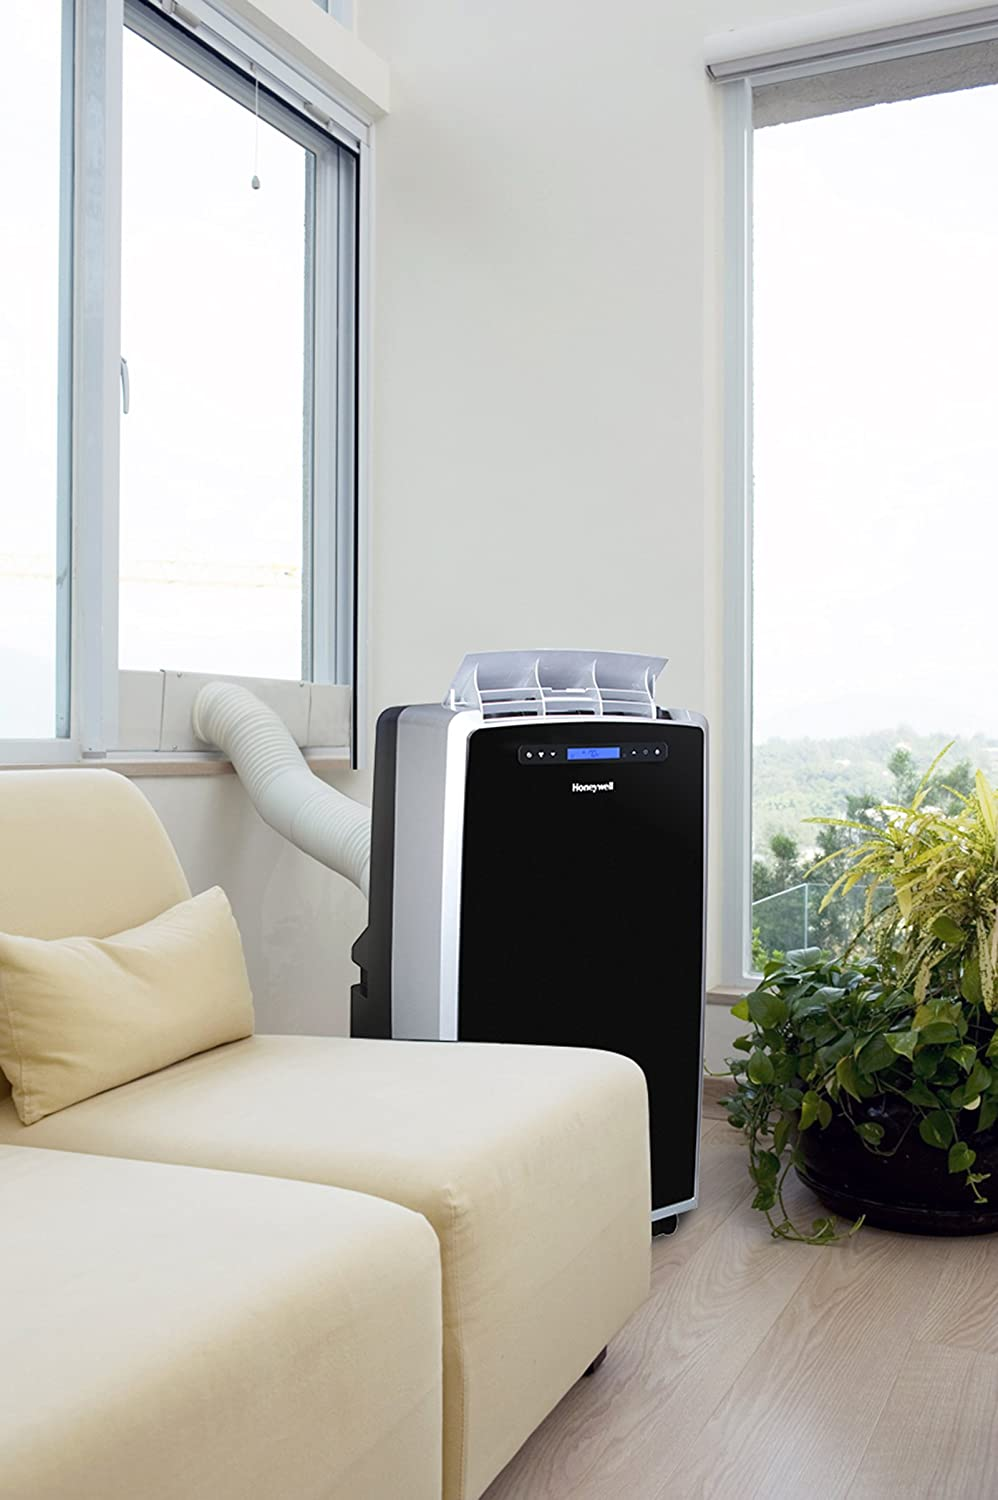 6. Honeywell MM14CCS - Best Portable Air Conditioner